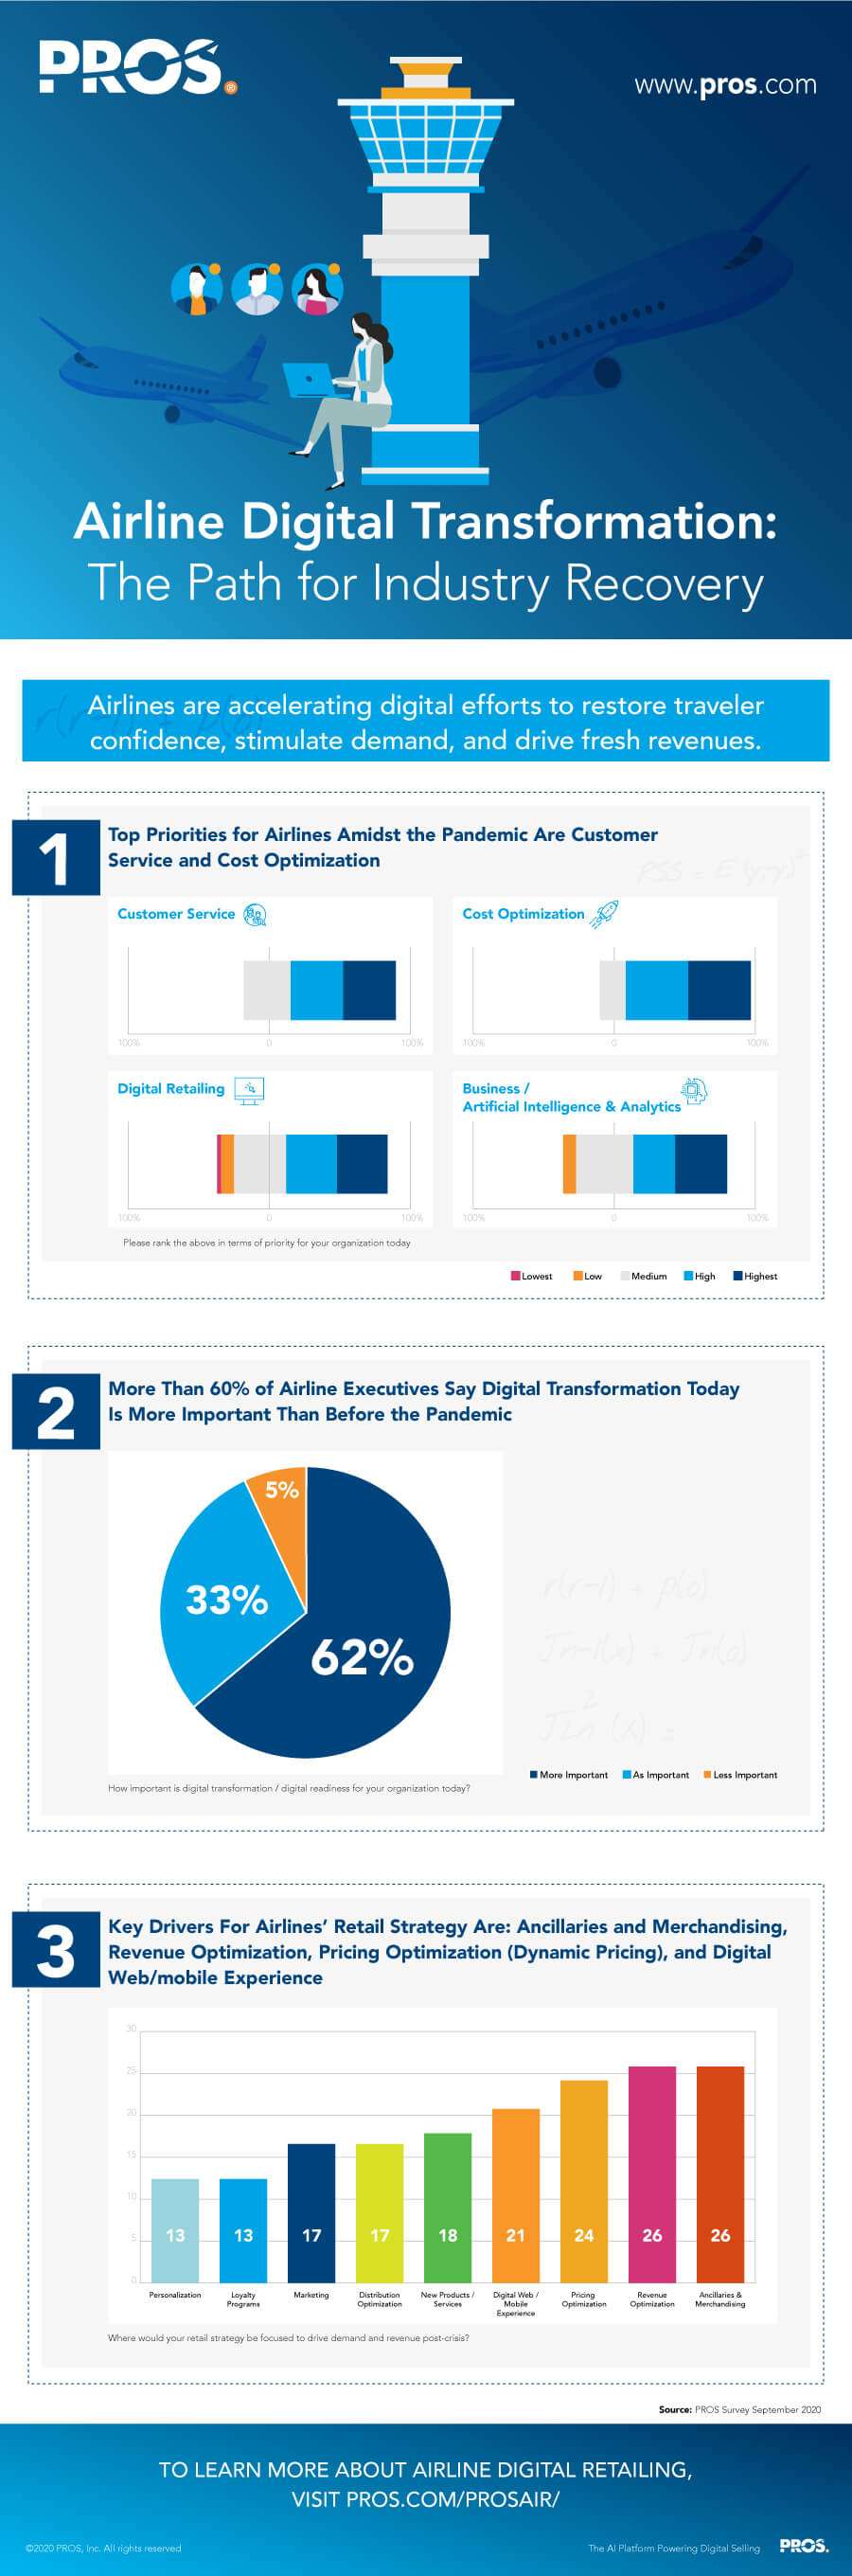 Airline Digital Transformation: The Path for Industry Recovery infographic